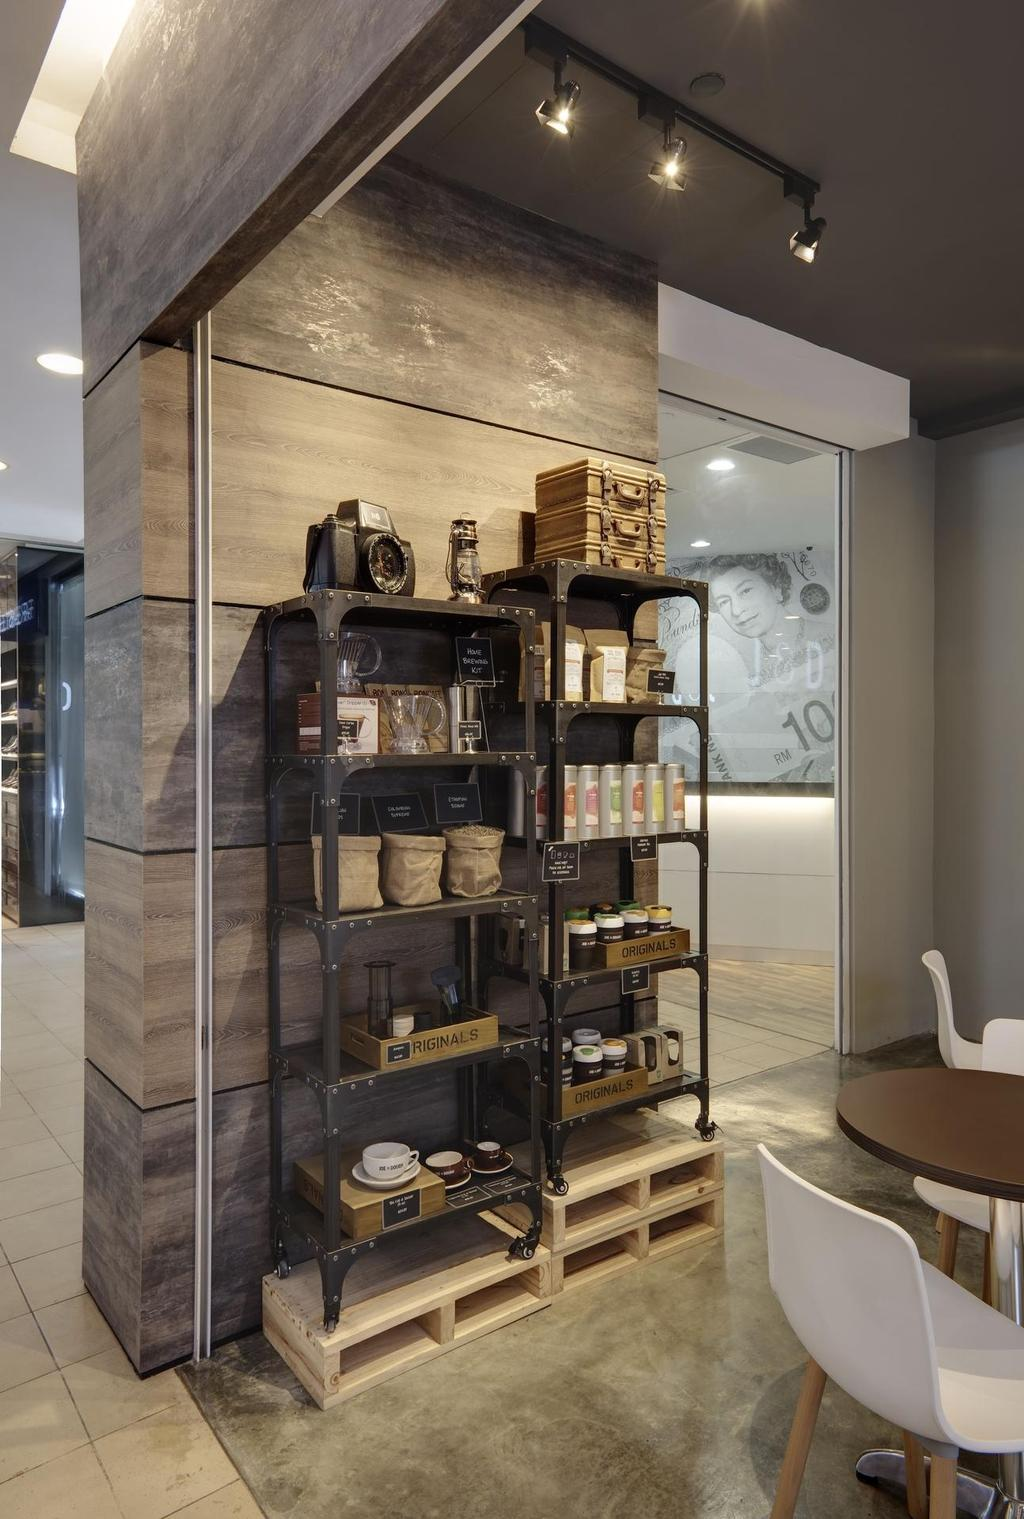 Joe & Dough (Golden Shoe Carpark), Commercial, Interior Designer, Liid Studio, Scandinavian, Shelf, Shelves, Display Shelf, Display Unit, Cement Flooring, Wood Laminate, Wood, Laminate, Track Lighting, Luggage, Suitcase, Appliance, Electrical Device, Oven